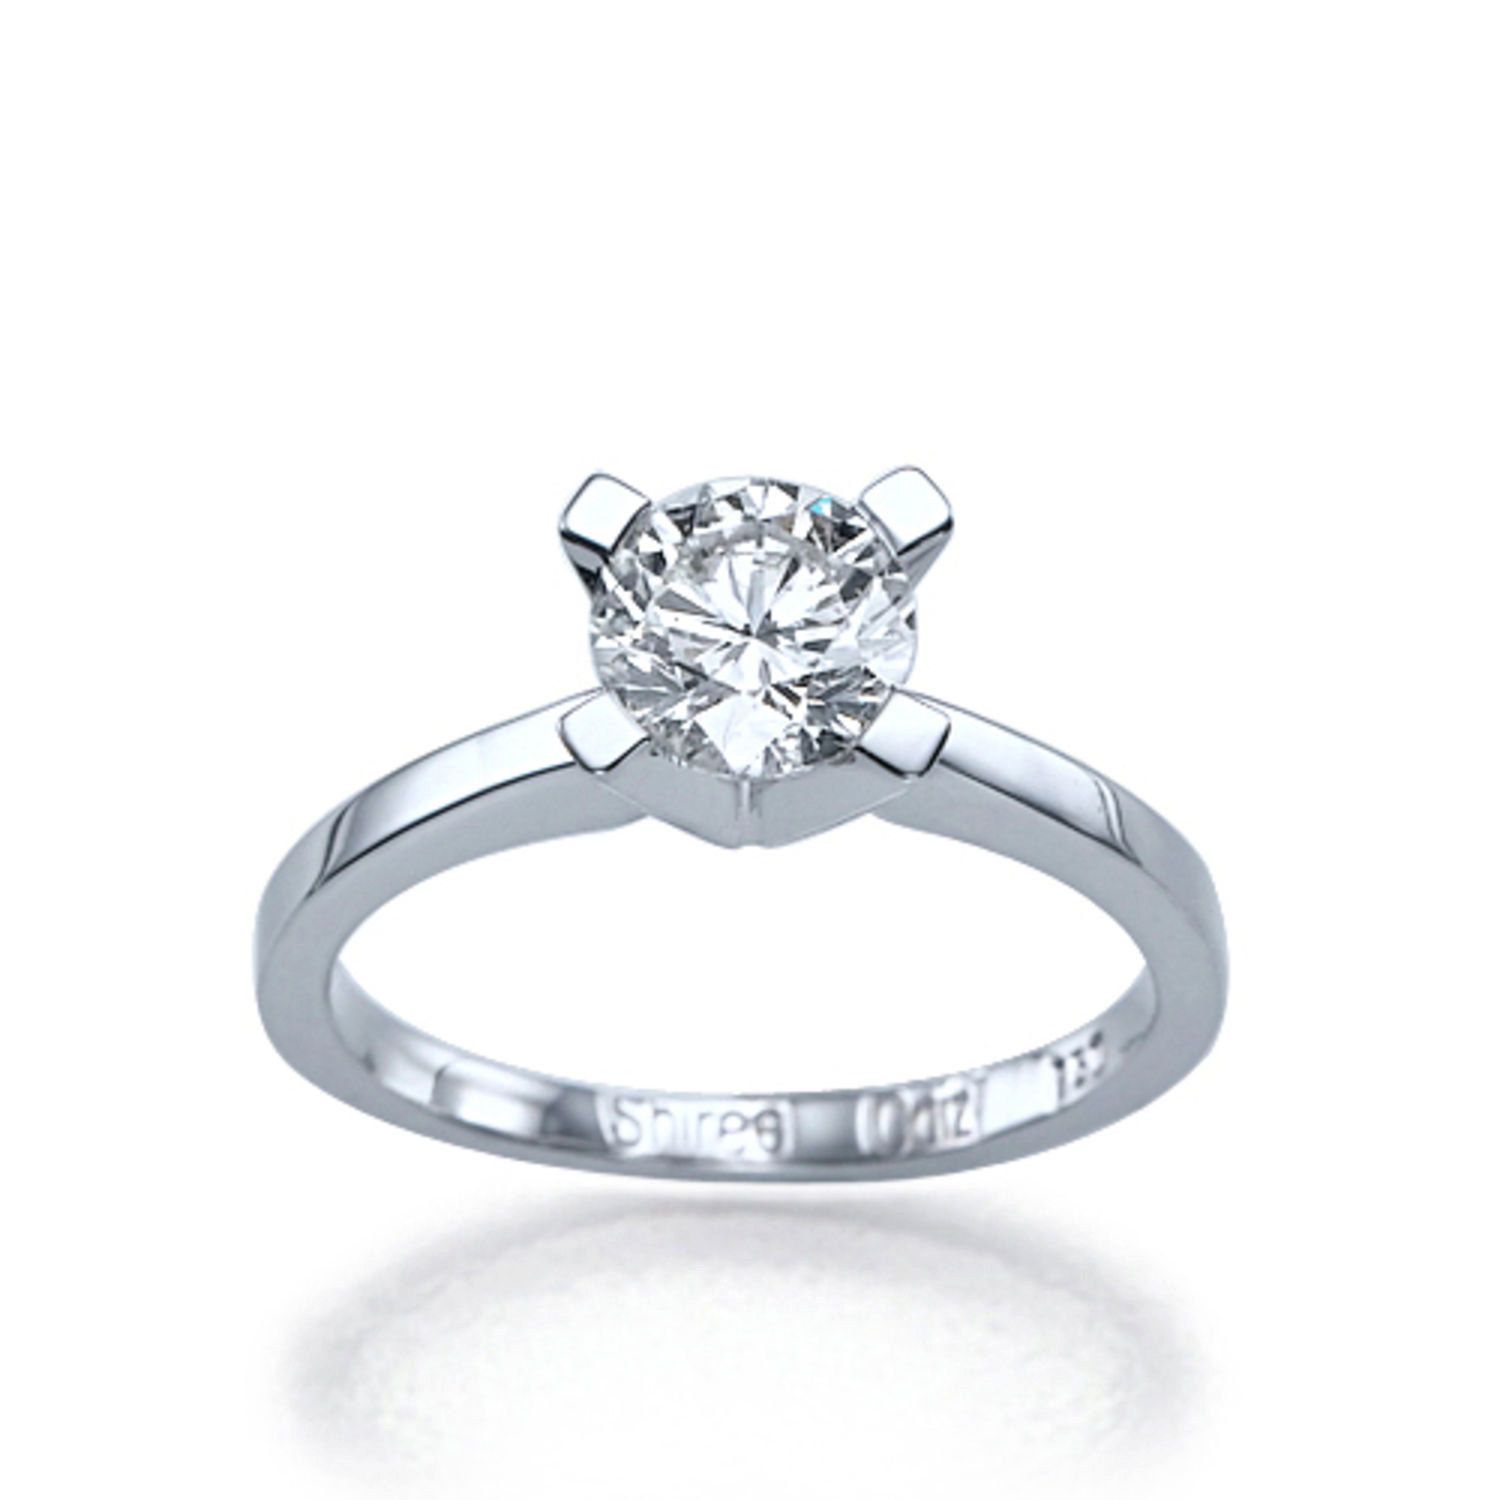 New To Shireeodiz On Etsy: Solitaire Engagement Ring 950